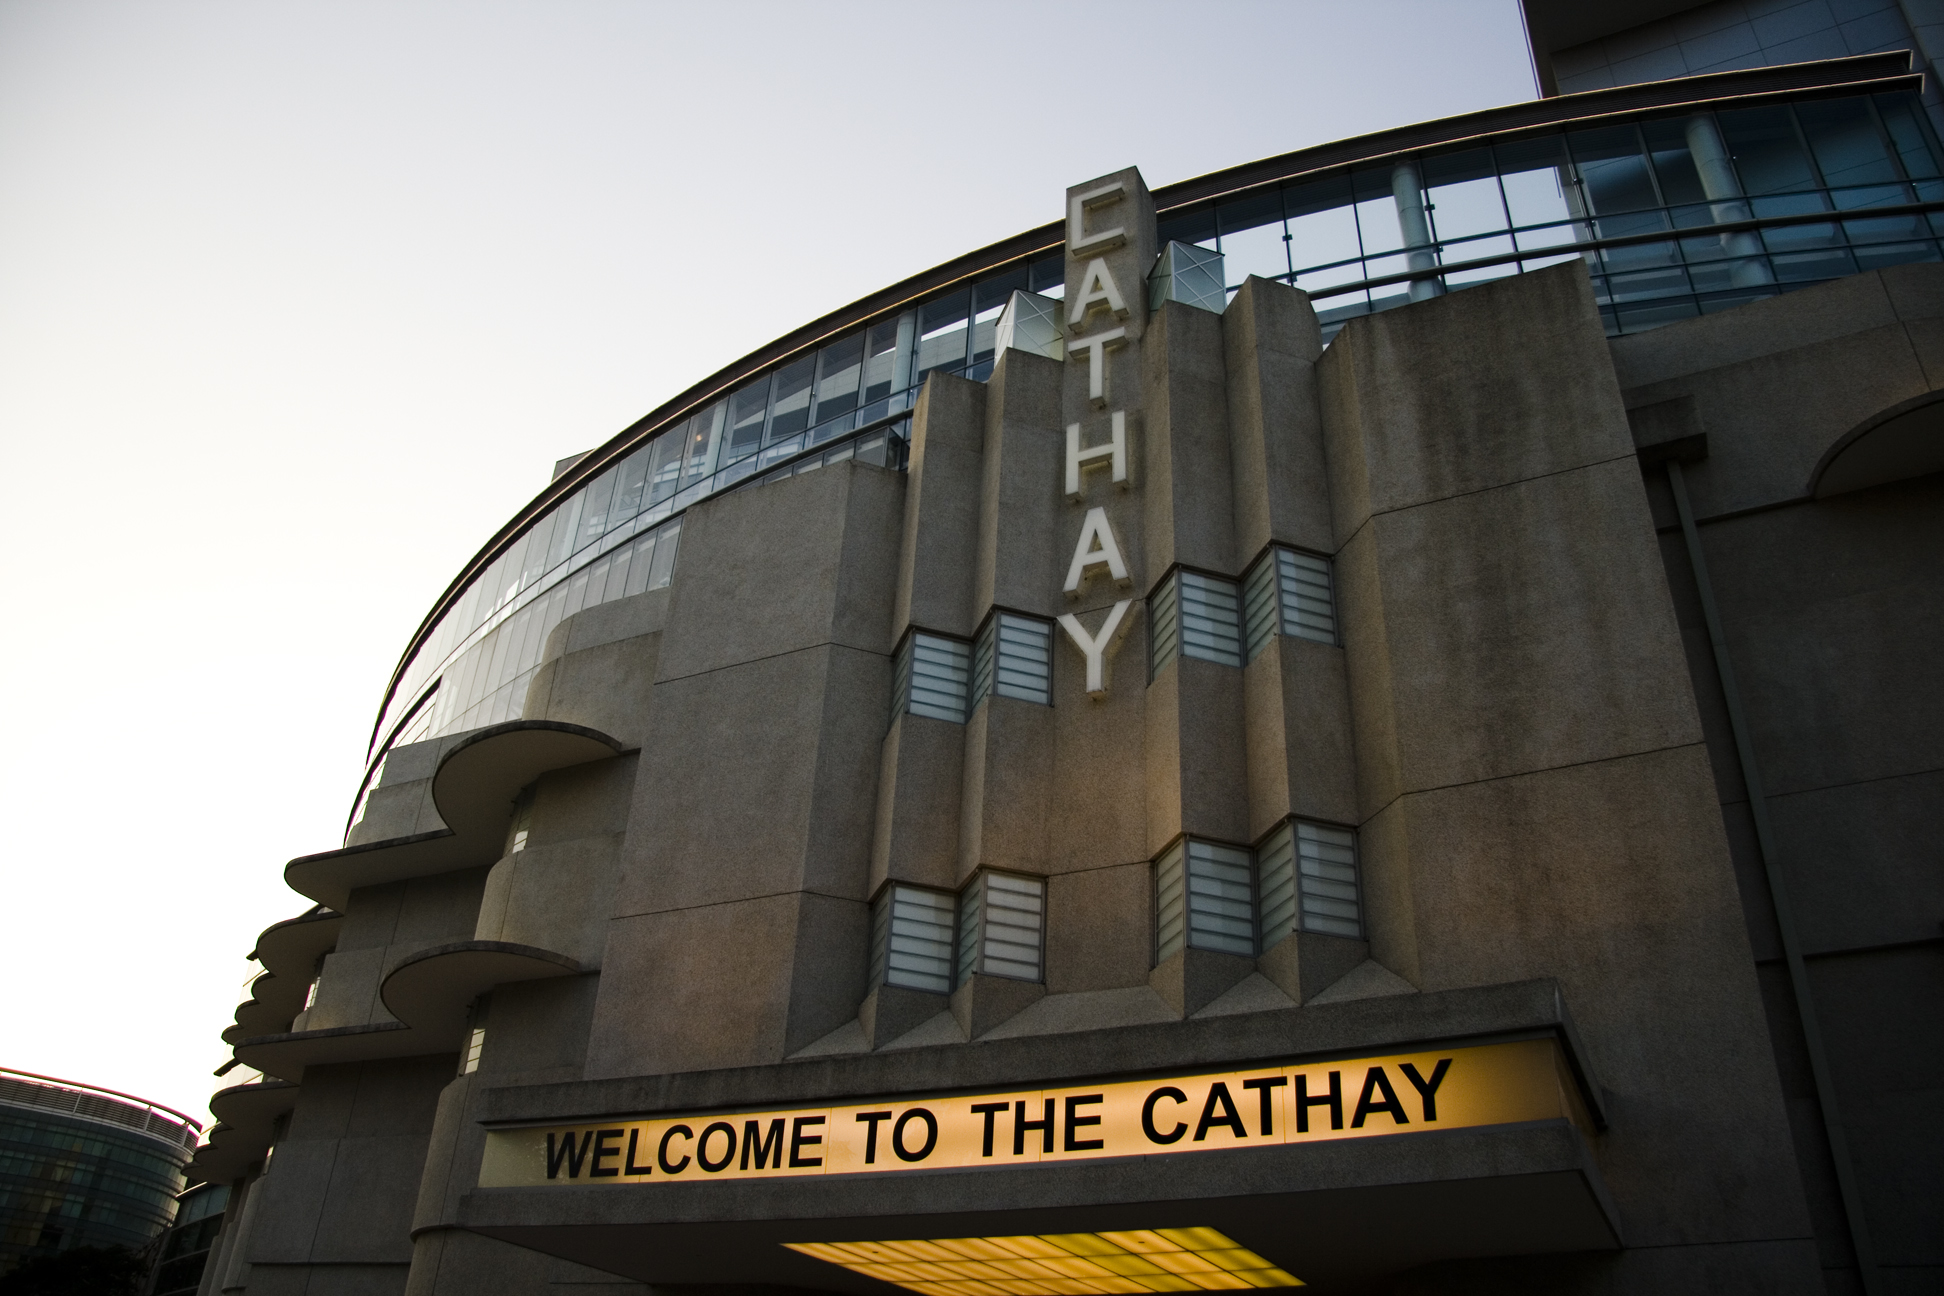 Welcome to the Cathay by splotchy on DeviantArt